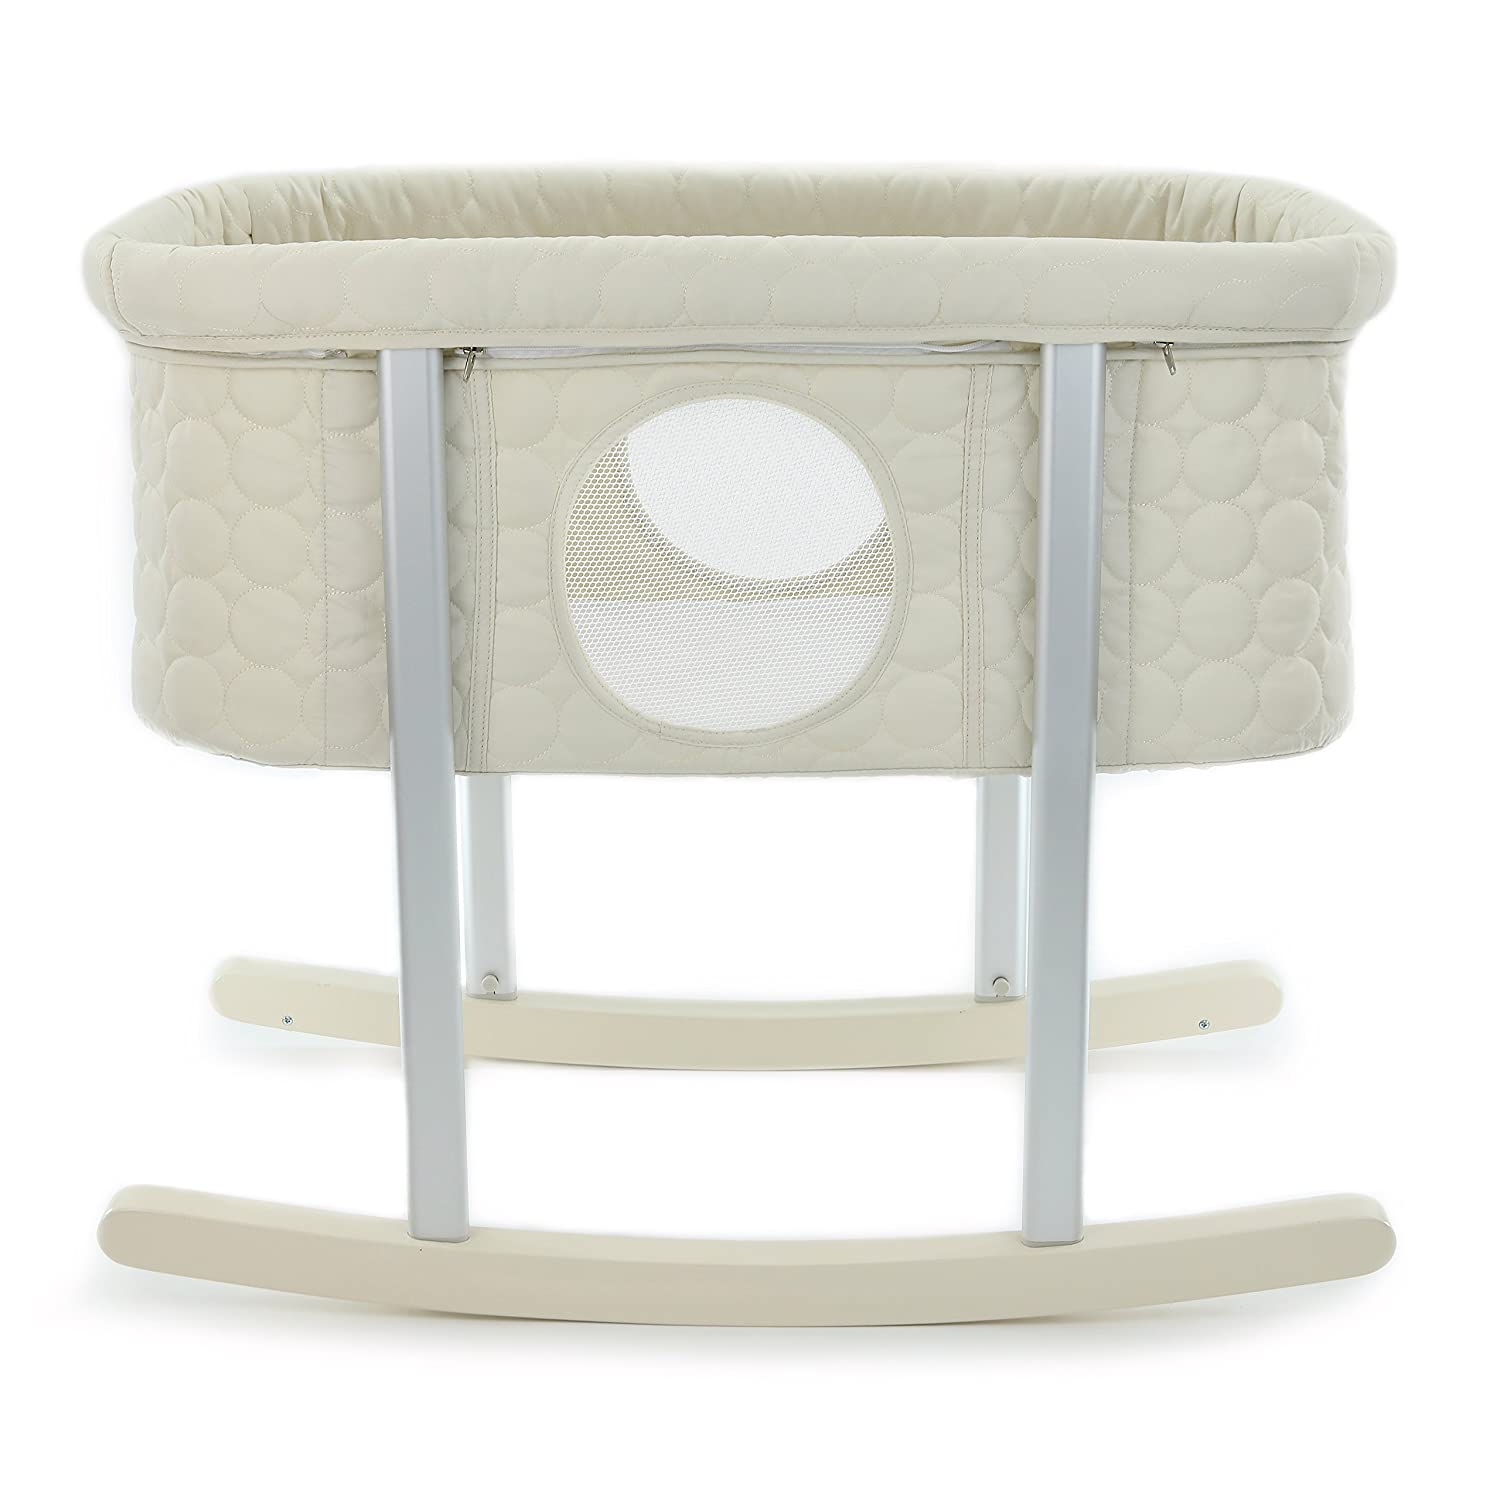 Baby Bassinet Cradle Includes Gentle Rocking Feature, Great for Newborns and Infants Safe Mattress Includes wheels for Easy Movement High End Washable Fabric Lightweight & Transportable (Grey) Green Frog